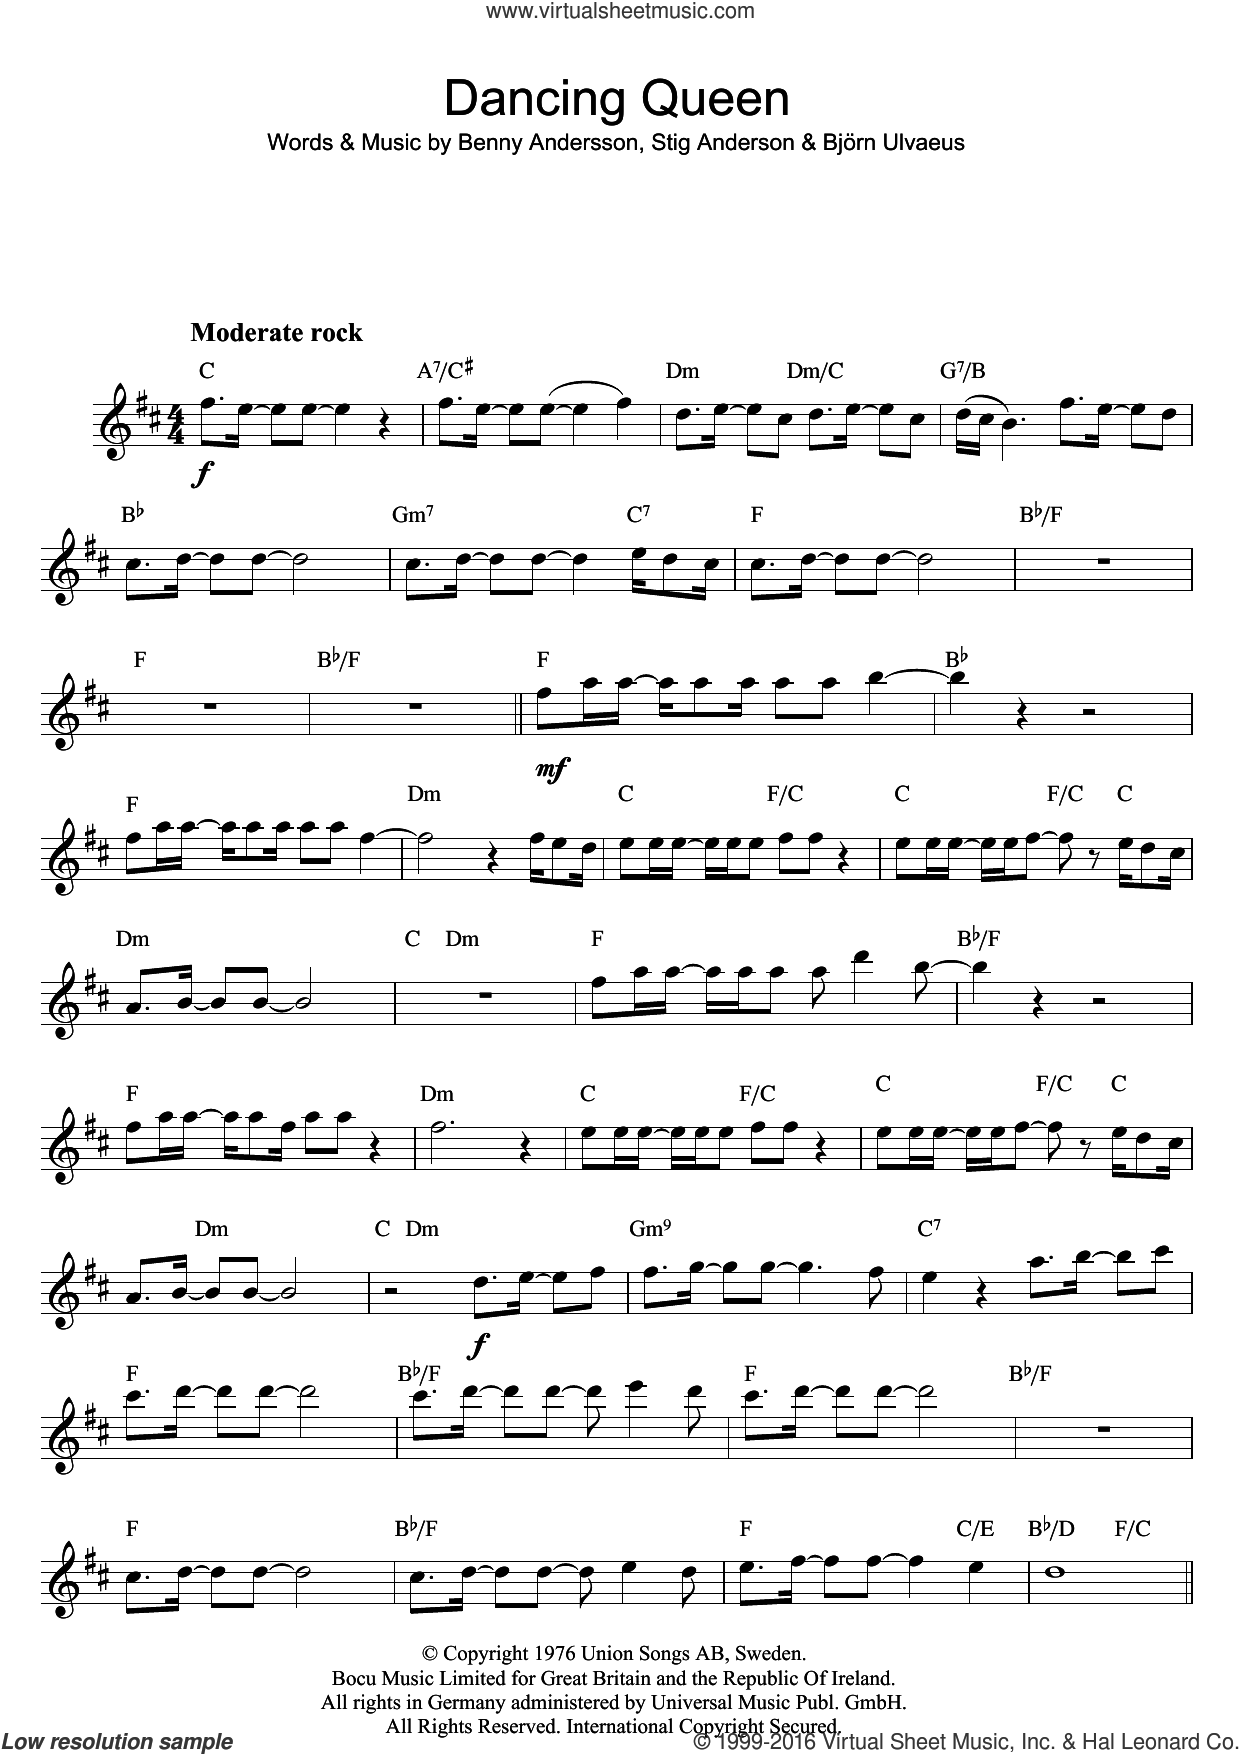 Dancing Queen sheet music for saxophone solo by ABBA, Benny Andersson, Bjorn Ulvaeus and Stig Anderson, intermediate skill level